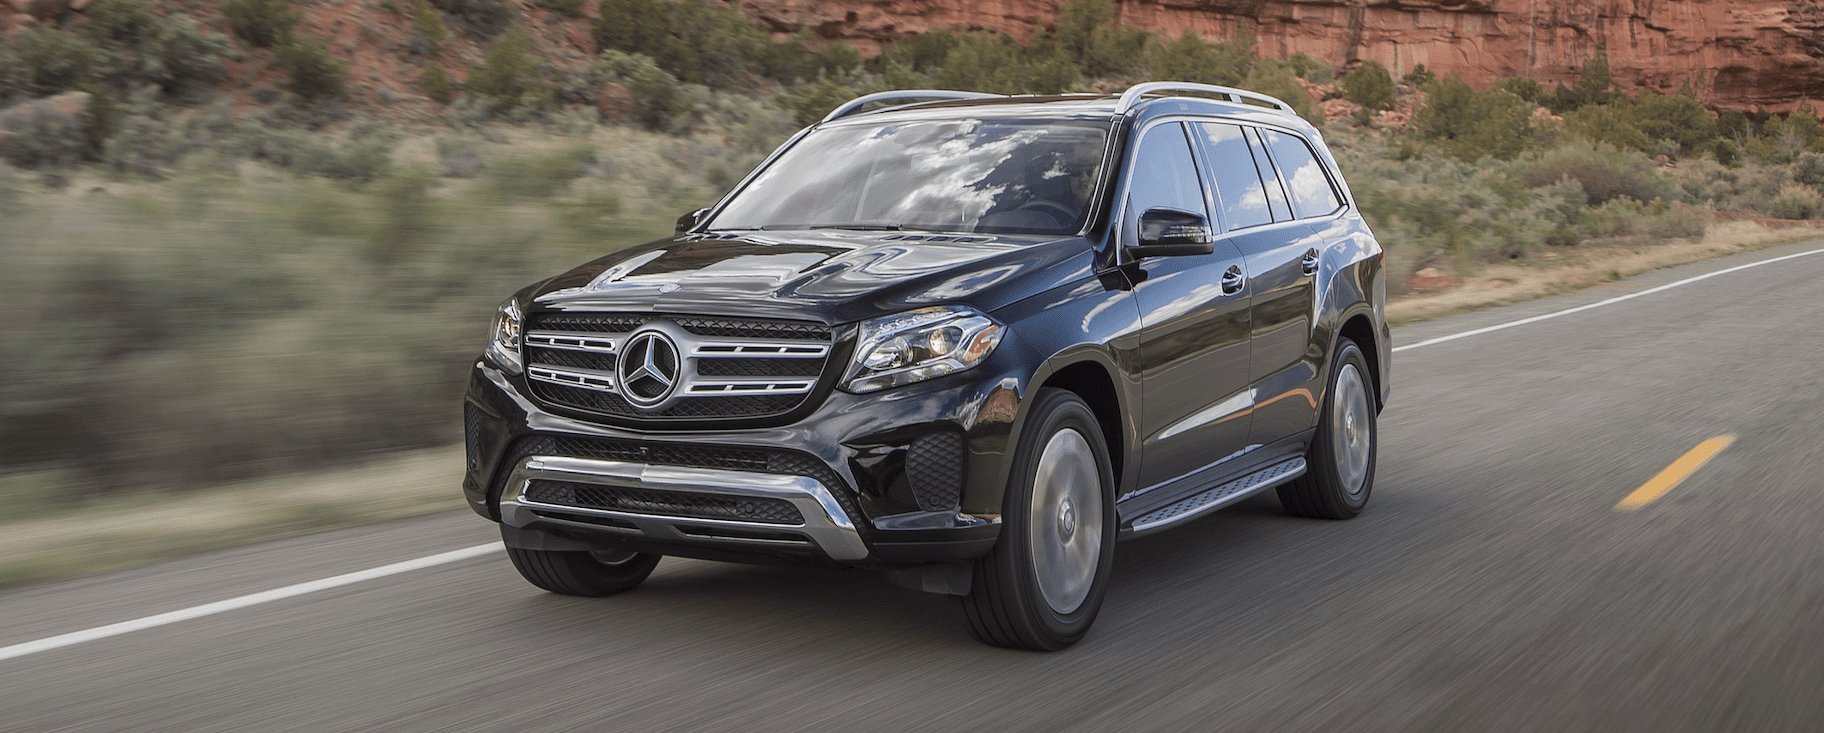 Despite five of the nine large luxury SUV models on sale for the month seeing declines in sales, the segment was up by about 1,800 units. When you look YTD, the segment YTD was up 11,000 units. Leading the pack in terms of overall sales was the Cadillac Escalade. Despite it being in the number one spot, the vehicle saw a roughly 12 percent decrease from this month last year. When you look YTD, the vehicle was down roughly four percent. The BMW X7 and the Infiniti QX80 weren't far behind the Cadillac. The X7 doesn't have any historical data to compare it to because it's a new model, but the QX80 has seen a rise of about 57 percent for the month and 19 percent YTD. It will be interesting to see if the sales rises continue as the year progresses. We would assume they would. Below you will find sales figures for all Large Luxury SUVs sold in the United States broken down by month and by quarter. We will report June 2019 Large Luxury SUV Sales beginning on Tuesday, July 2nd, 2019 beginning around 10 AM ET. Data will trickle in throughout the day with the numbers being finalized by EOD. GCBC is also happy to announce that we will be adding quarterly sales reports and comparisons in addition to monthly sales comparisons beginning this quarter. We will also be adding monthly sales tables and charts to the mix as well. Note: FCA US LLC will end its practice of reporting U.S. and Canada sales on a monthly basis following June results. FCA US and FCA Canada will report monthly sales for May and June. The first quarterly report will occur on October 1, 2019, covering the months of July, August, and September.